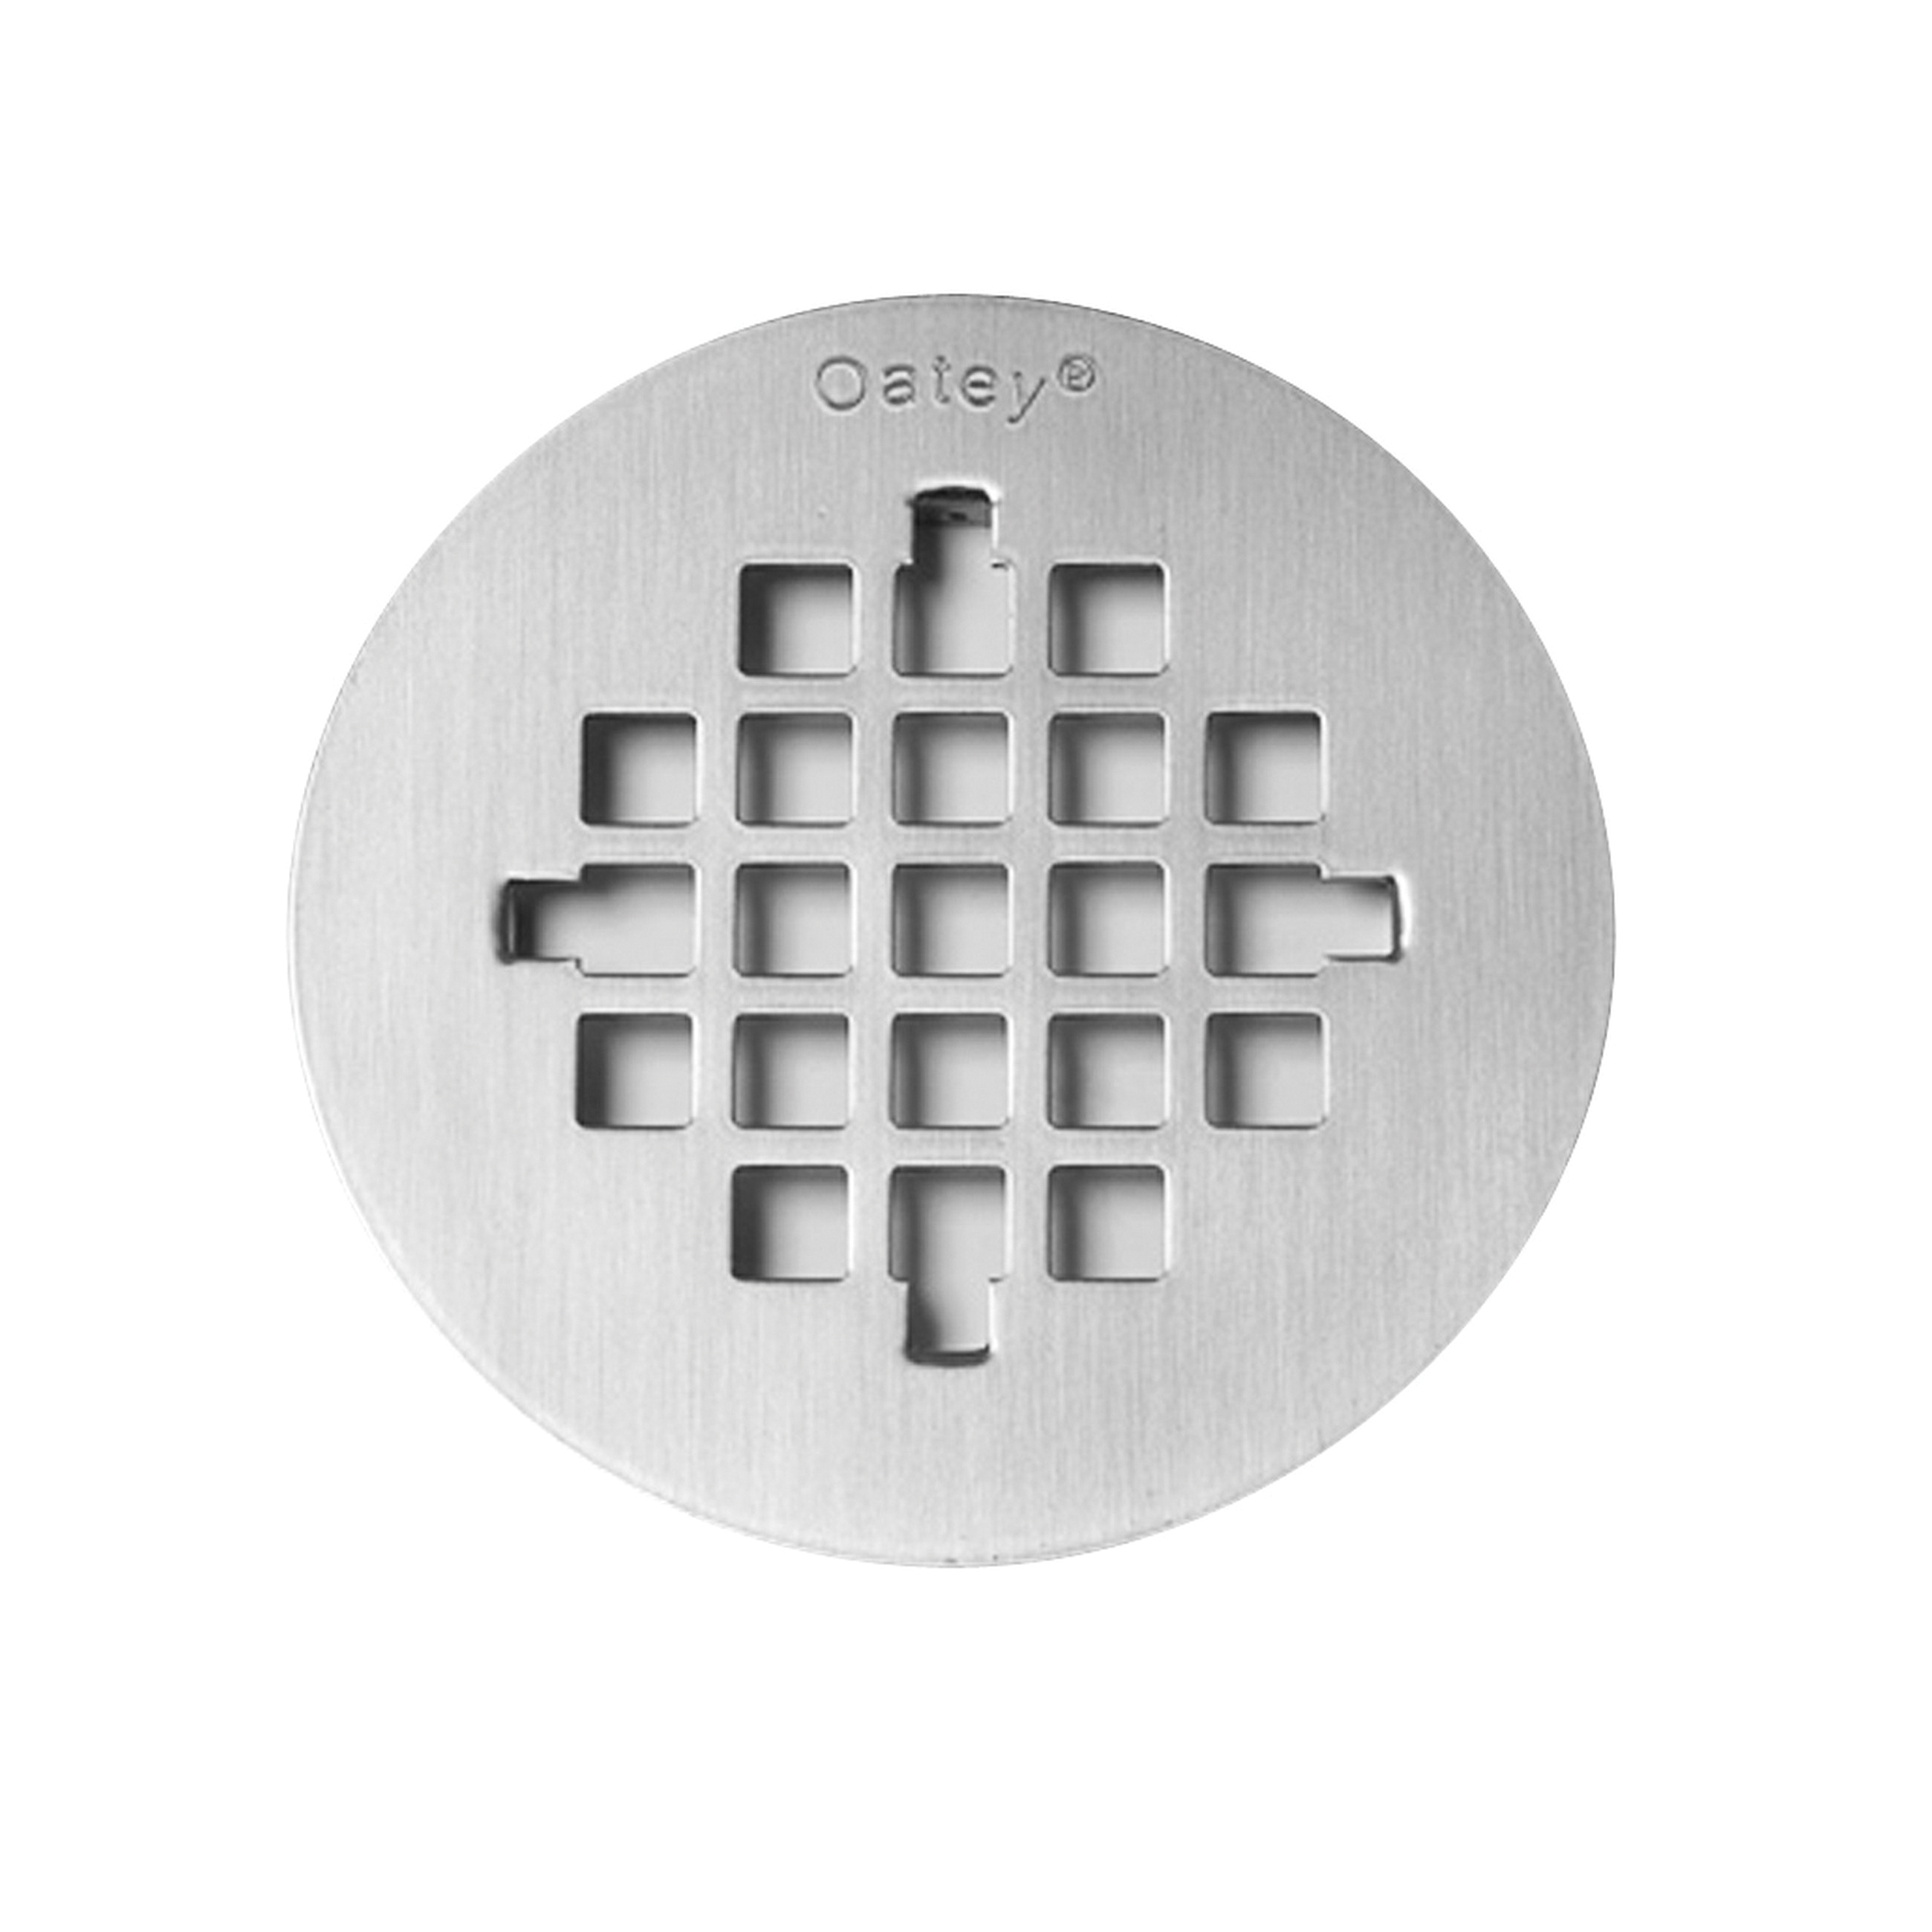 Oatey® 42138 Round Snap-Tite Strainer, 4-1/4 in Nominal, Stainless Steel